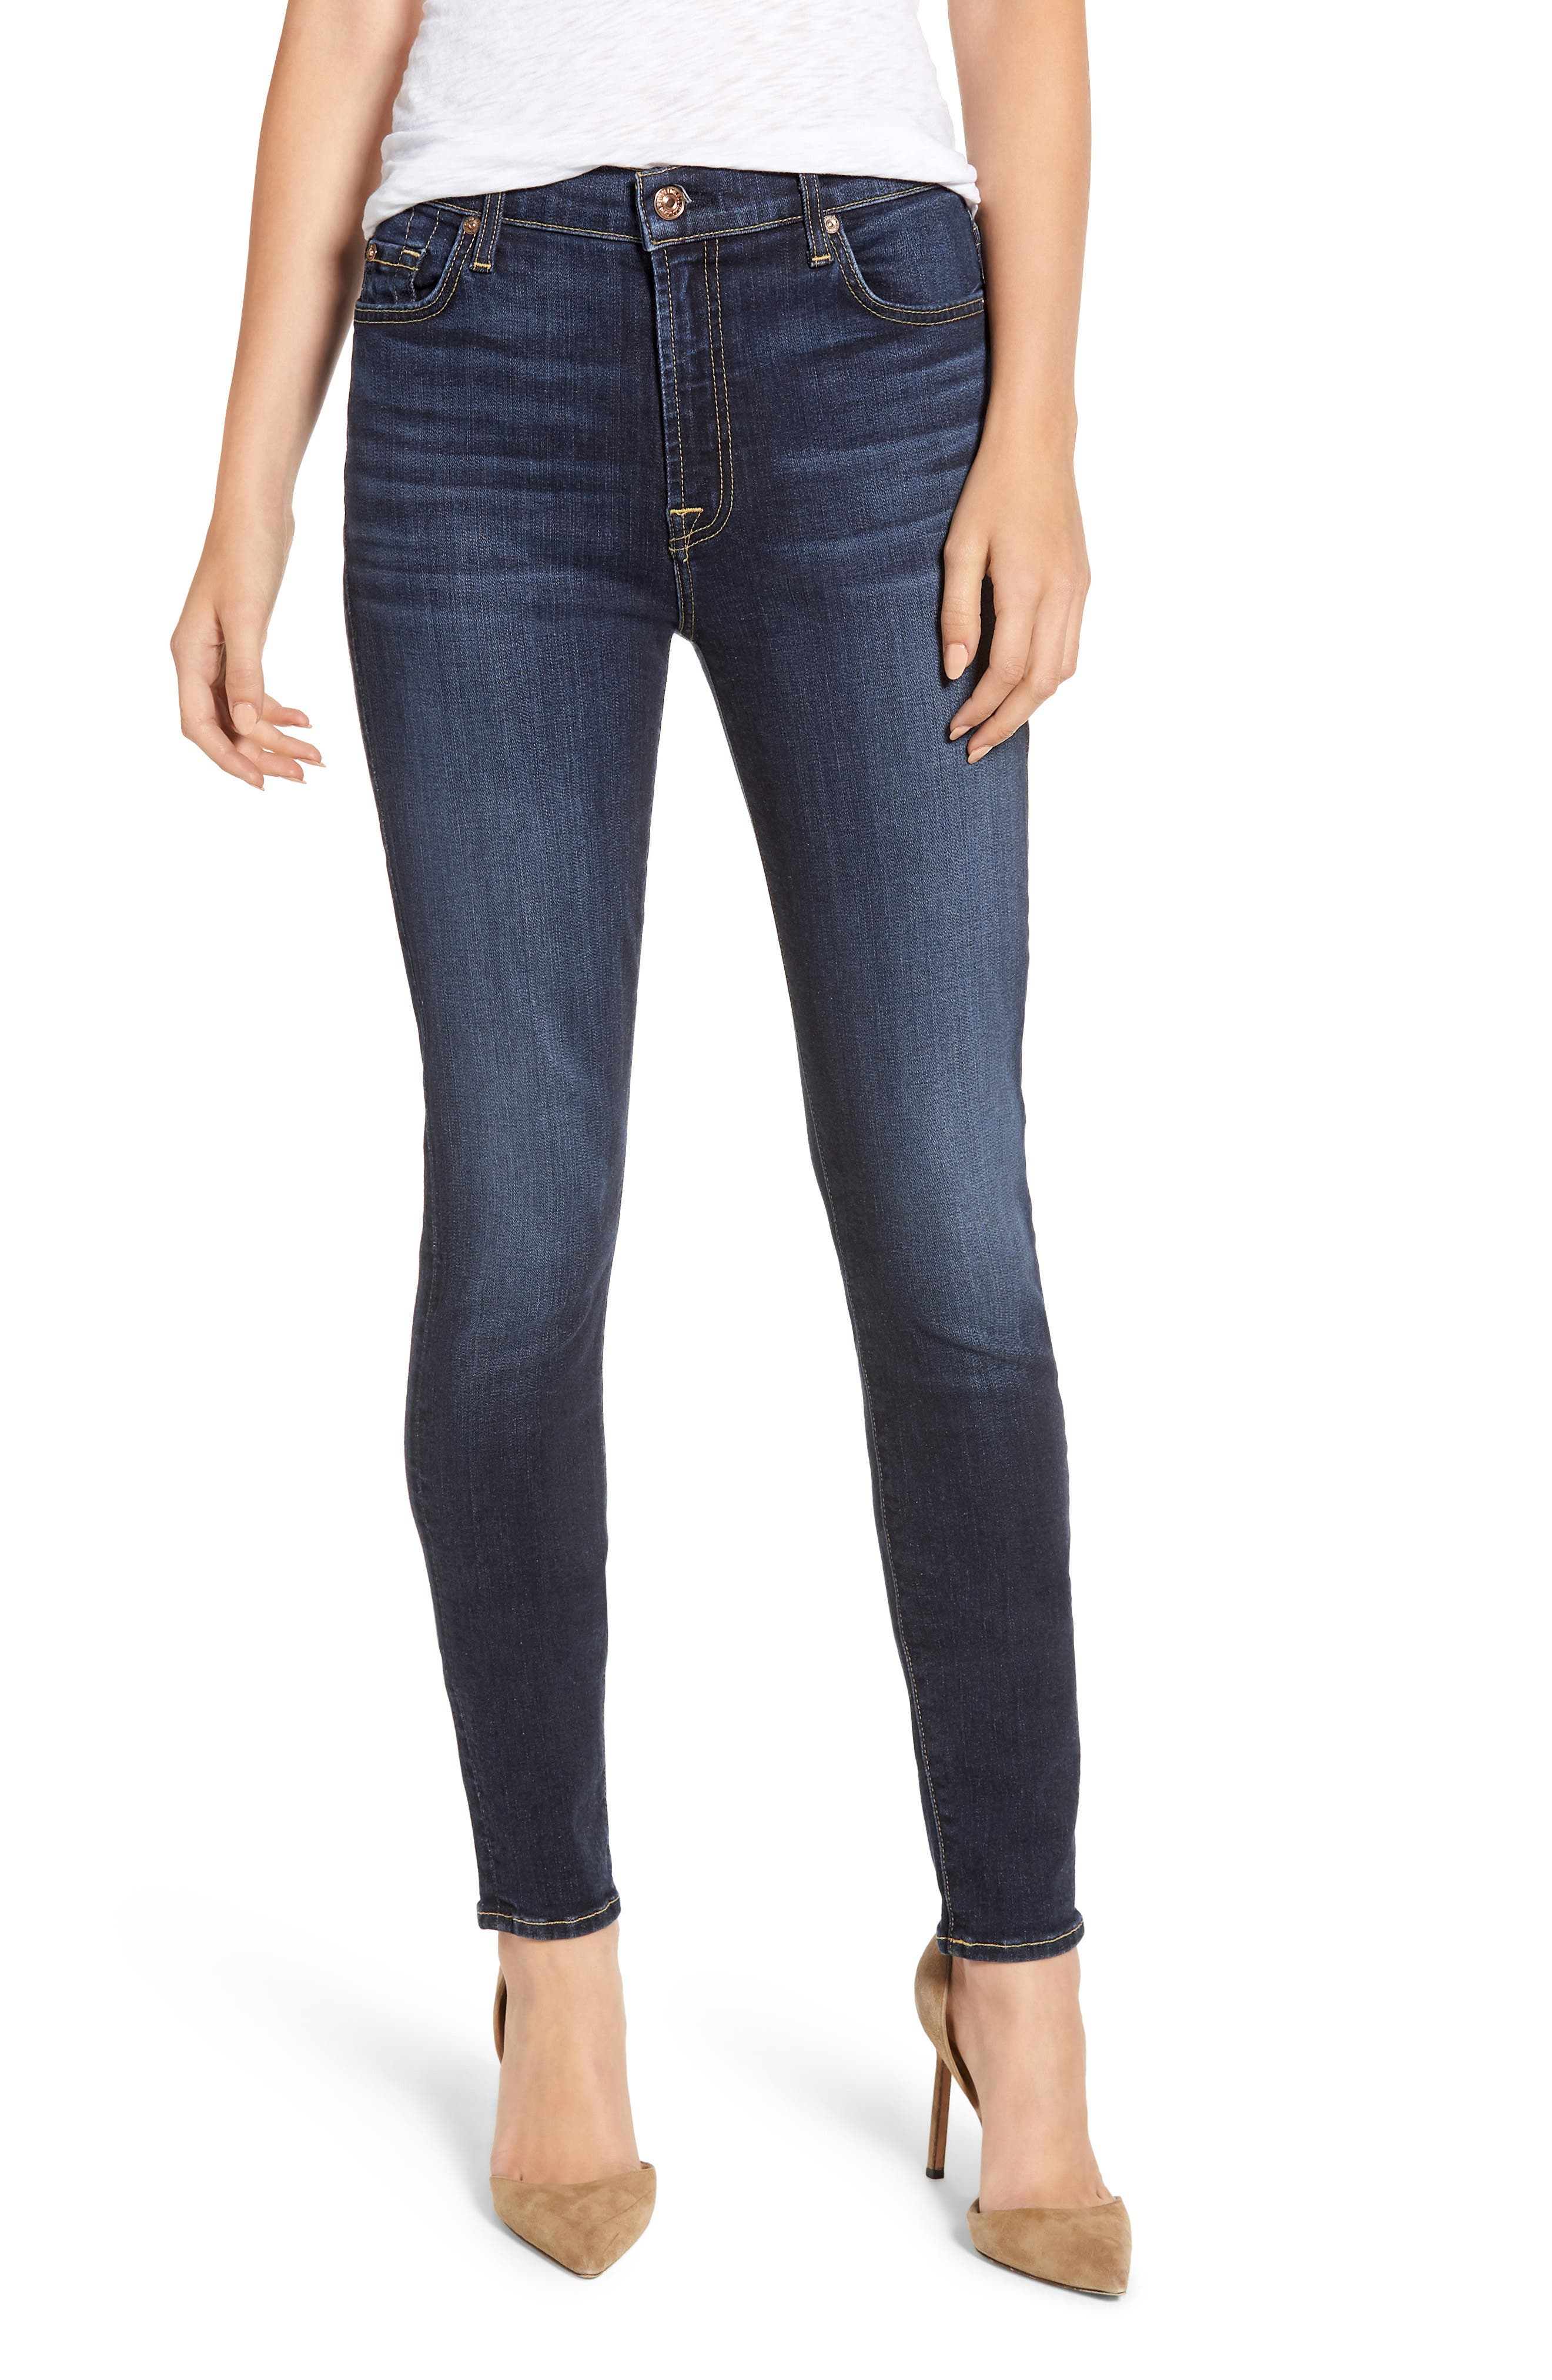 7 FOR ALL MANKIND<SUP>®</SUP>, The High Waist Skinny Jeans, Main thumbnail 1, color, AUTHENTIC FATE